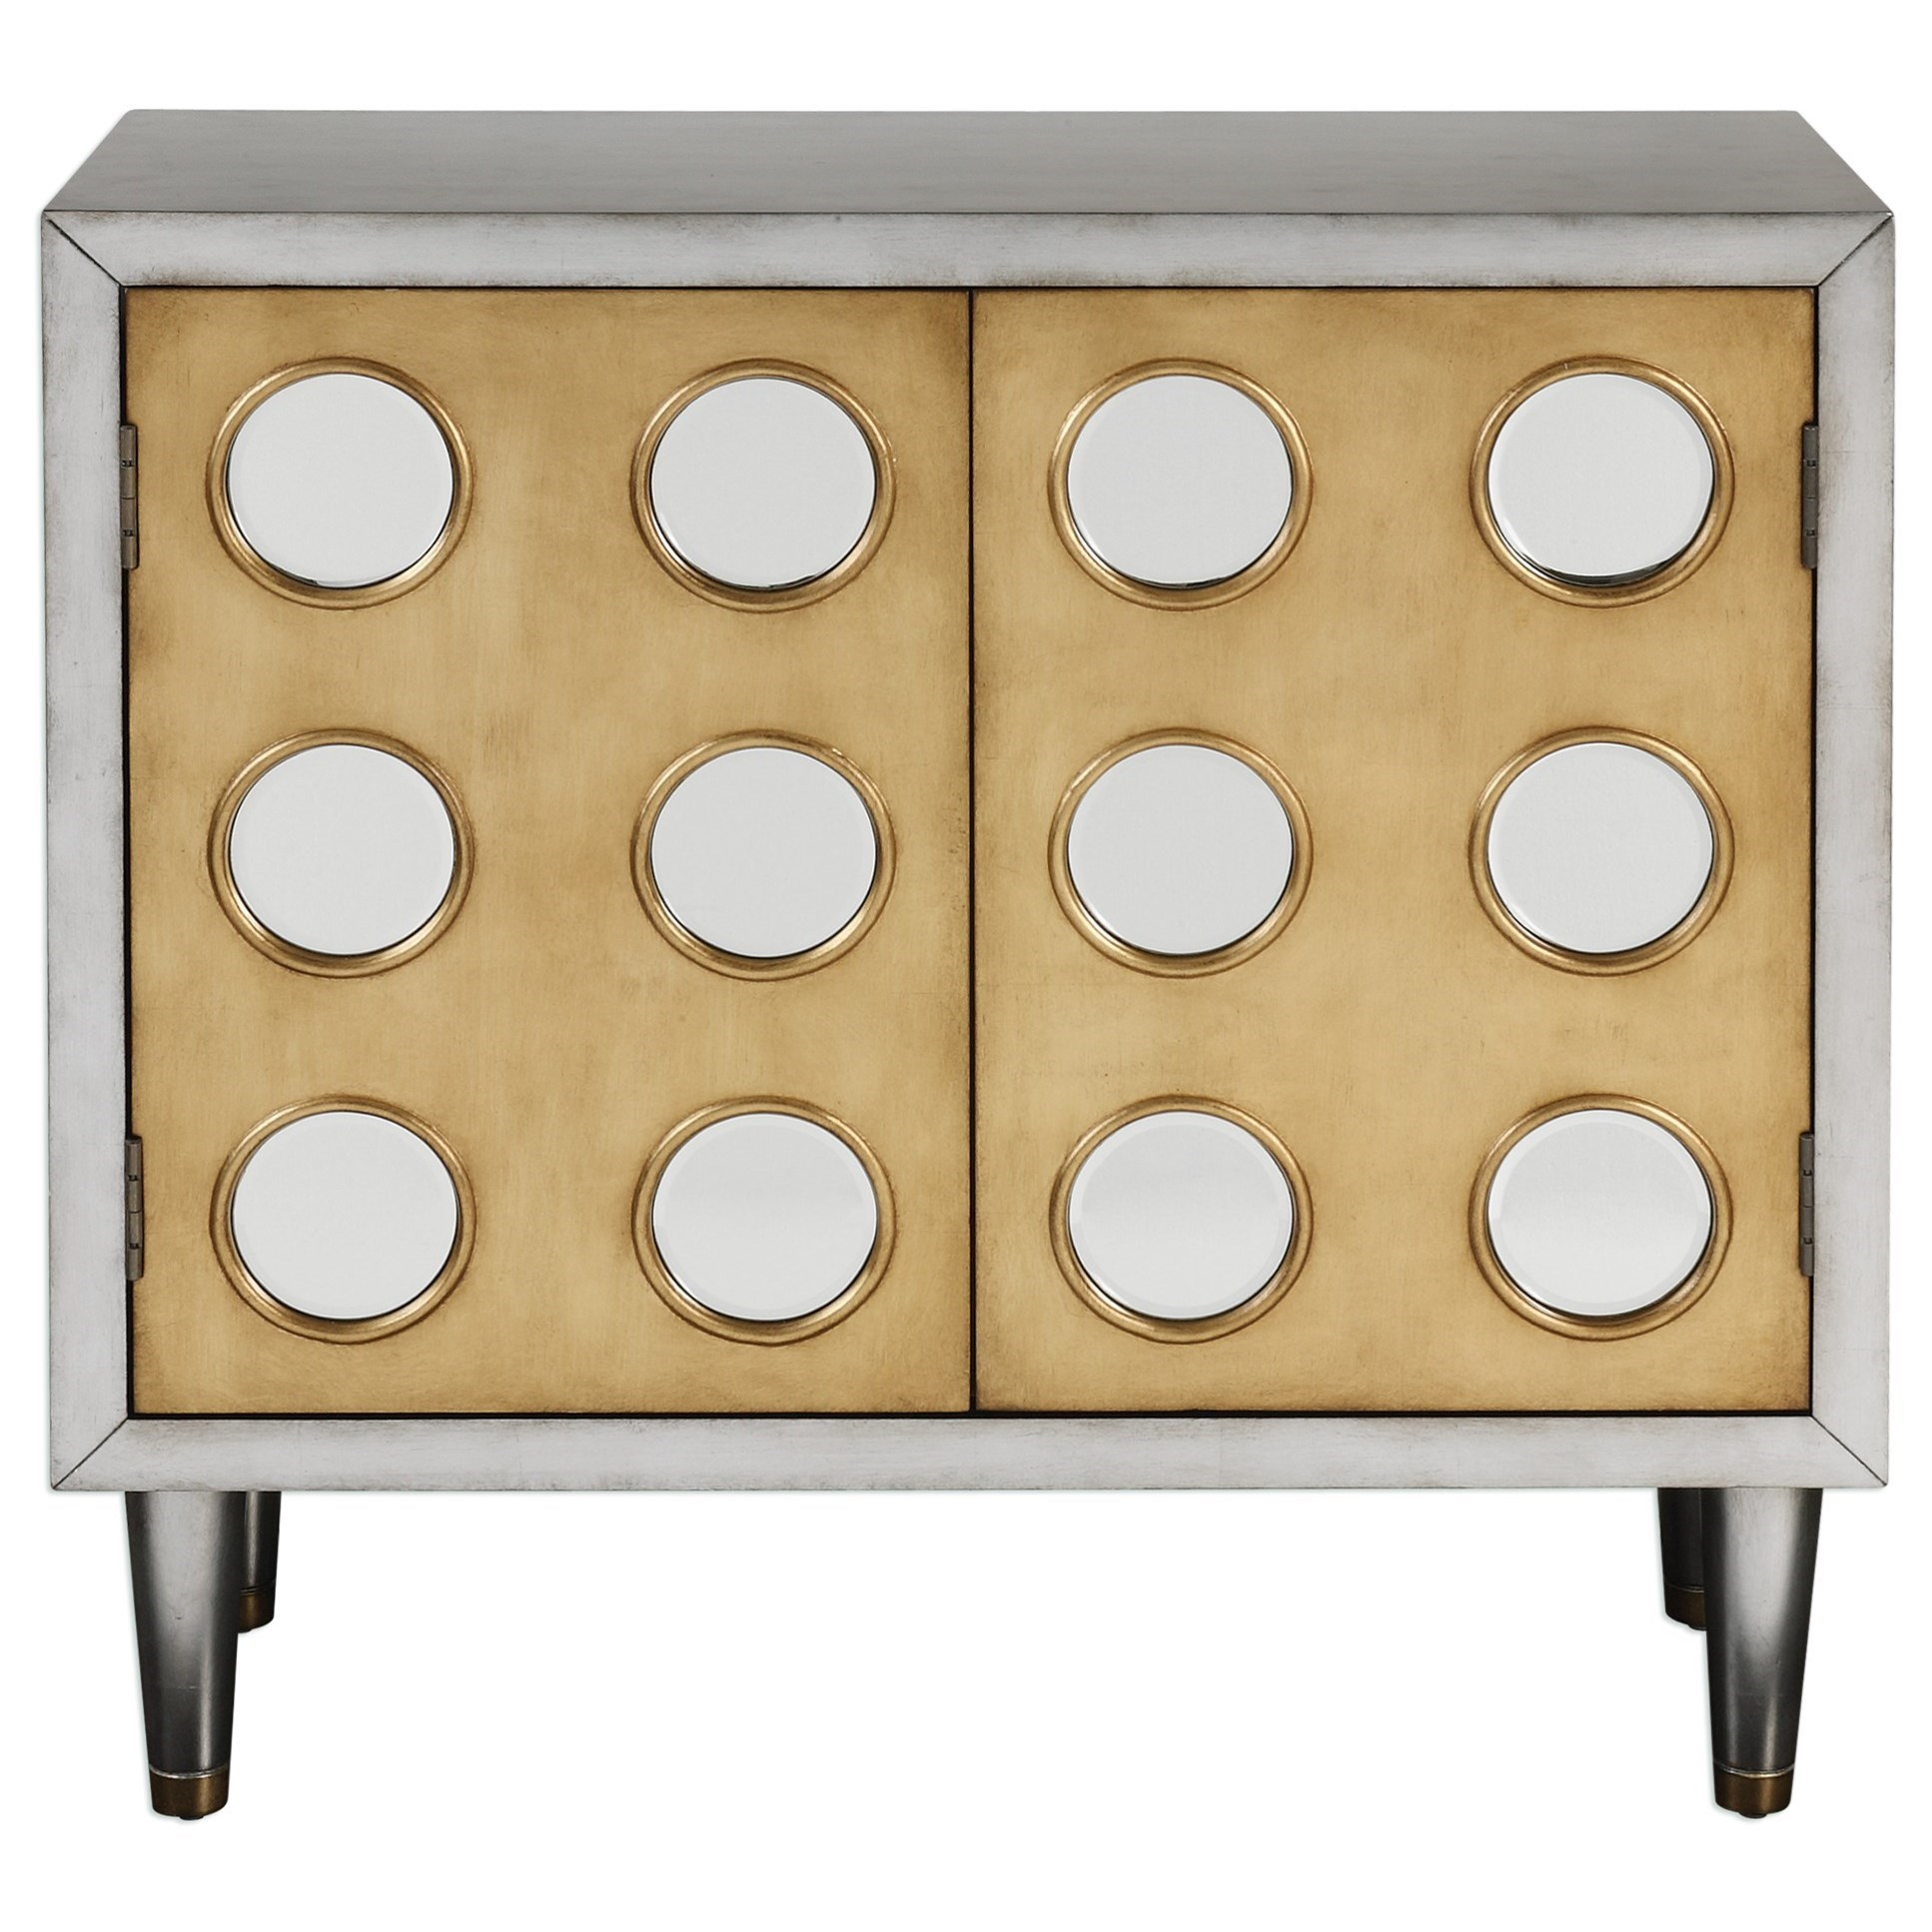 Uttermost Accent Furniture Bea Accent Cabinet - Item Number: 24695